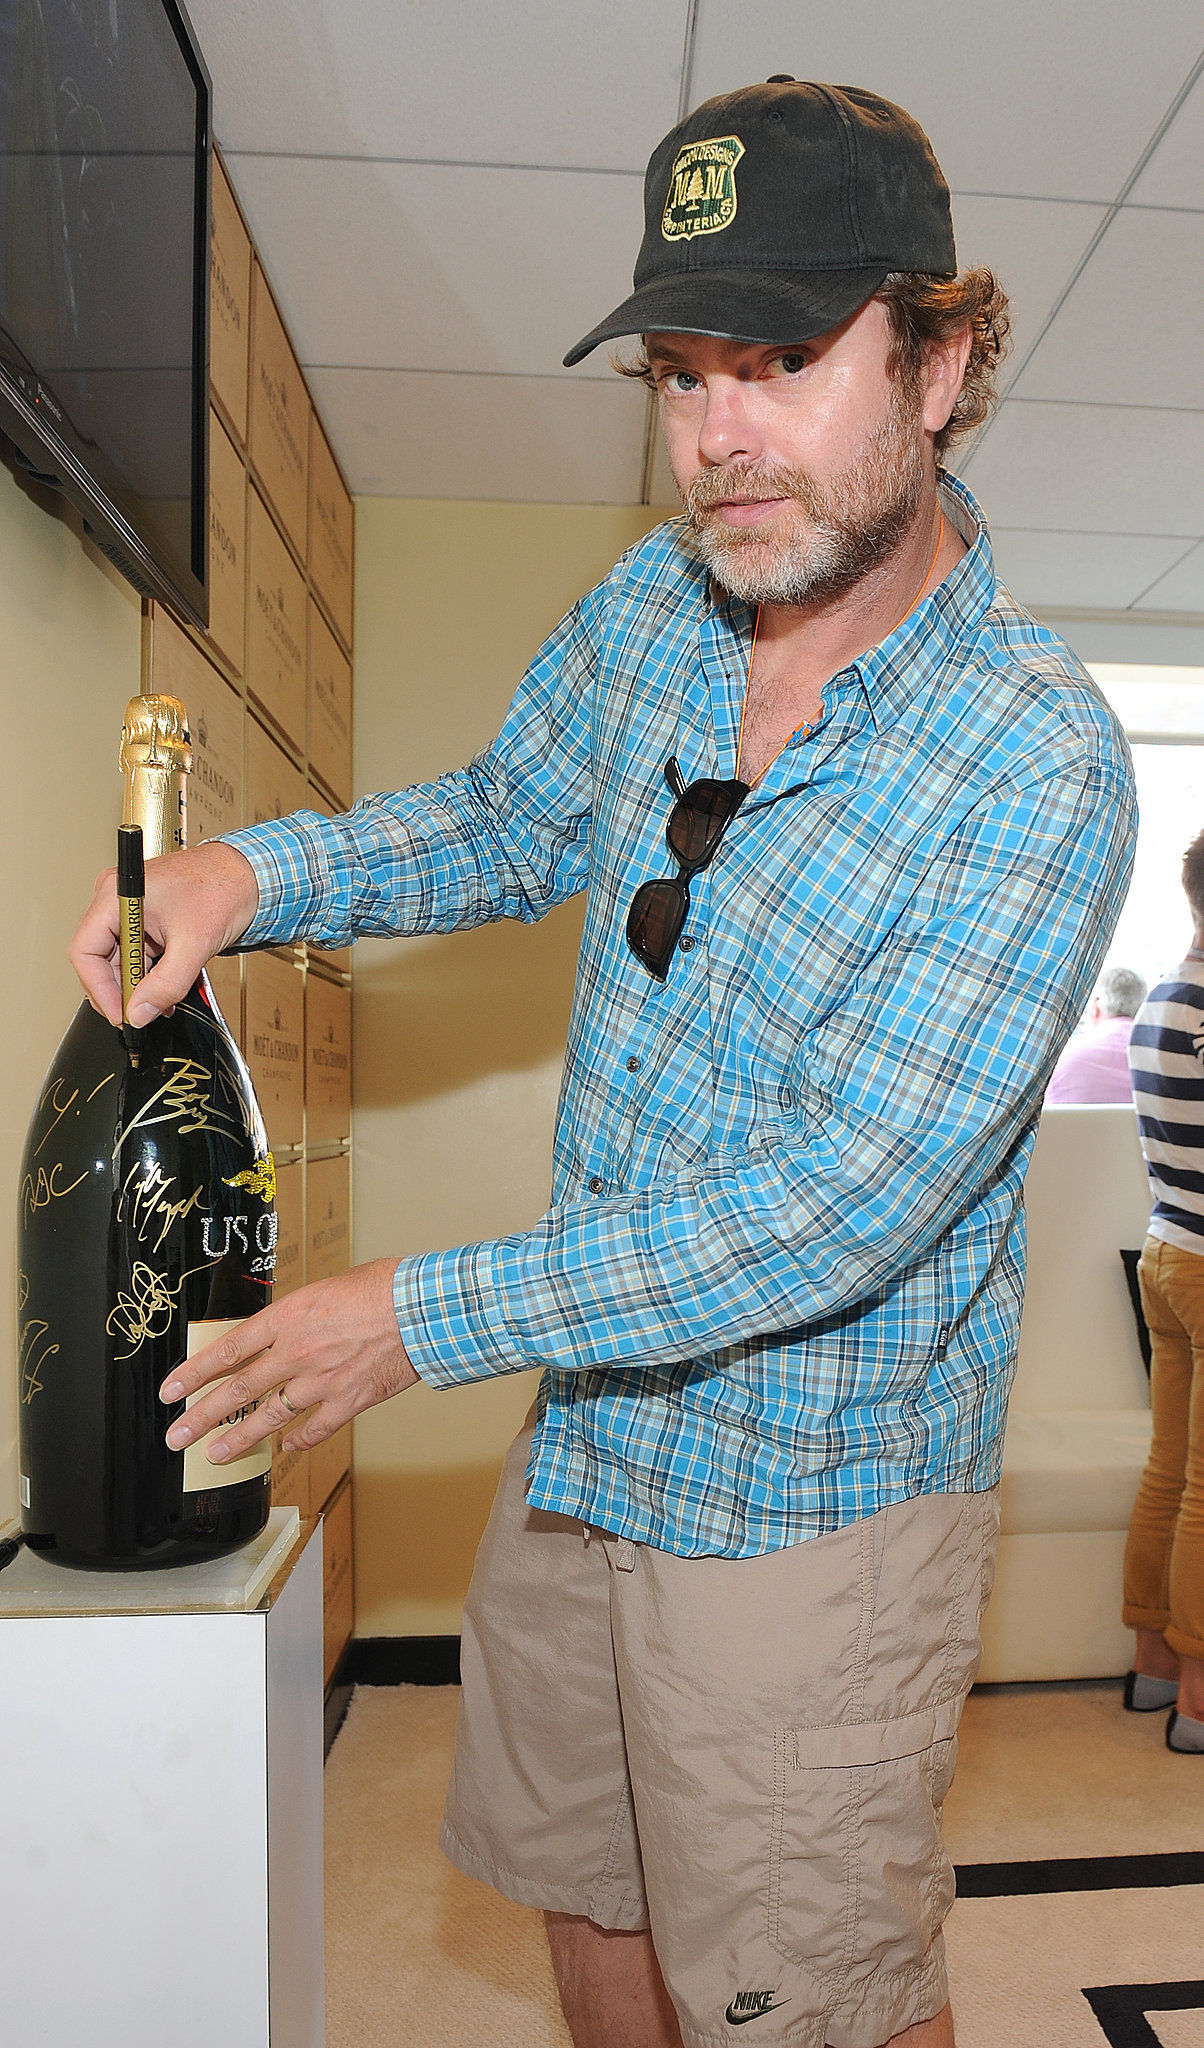 Rainn Wilson visited the Moet & Chandon suite at the US Open.